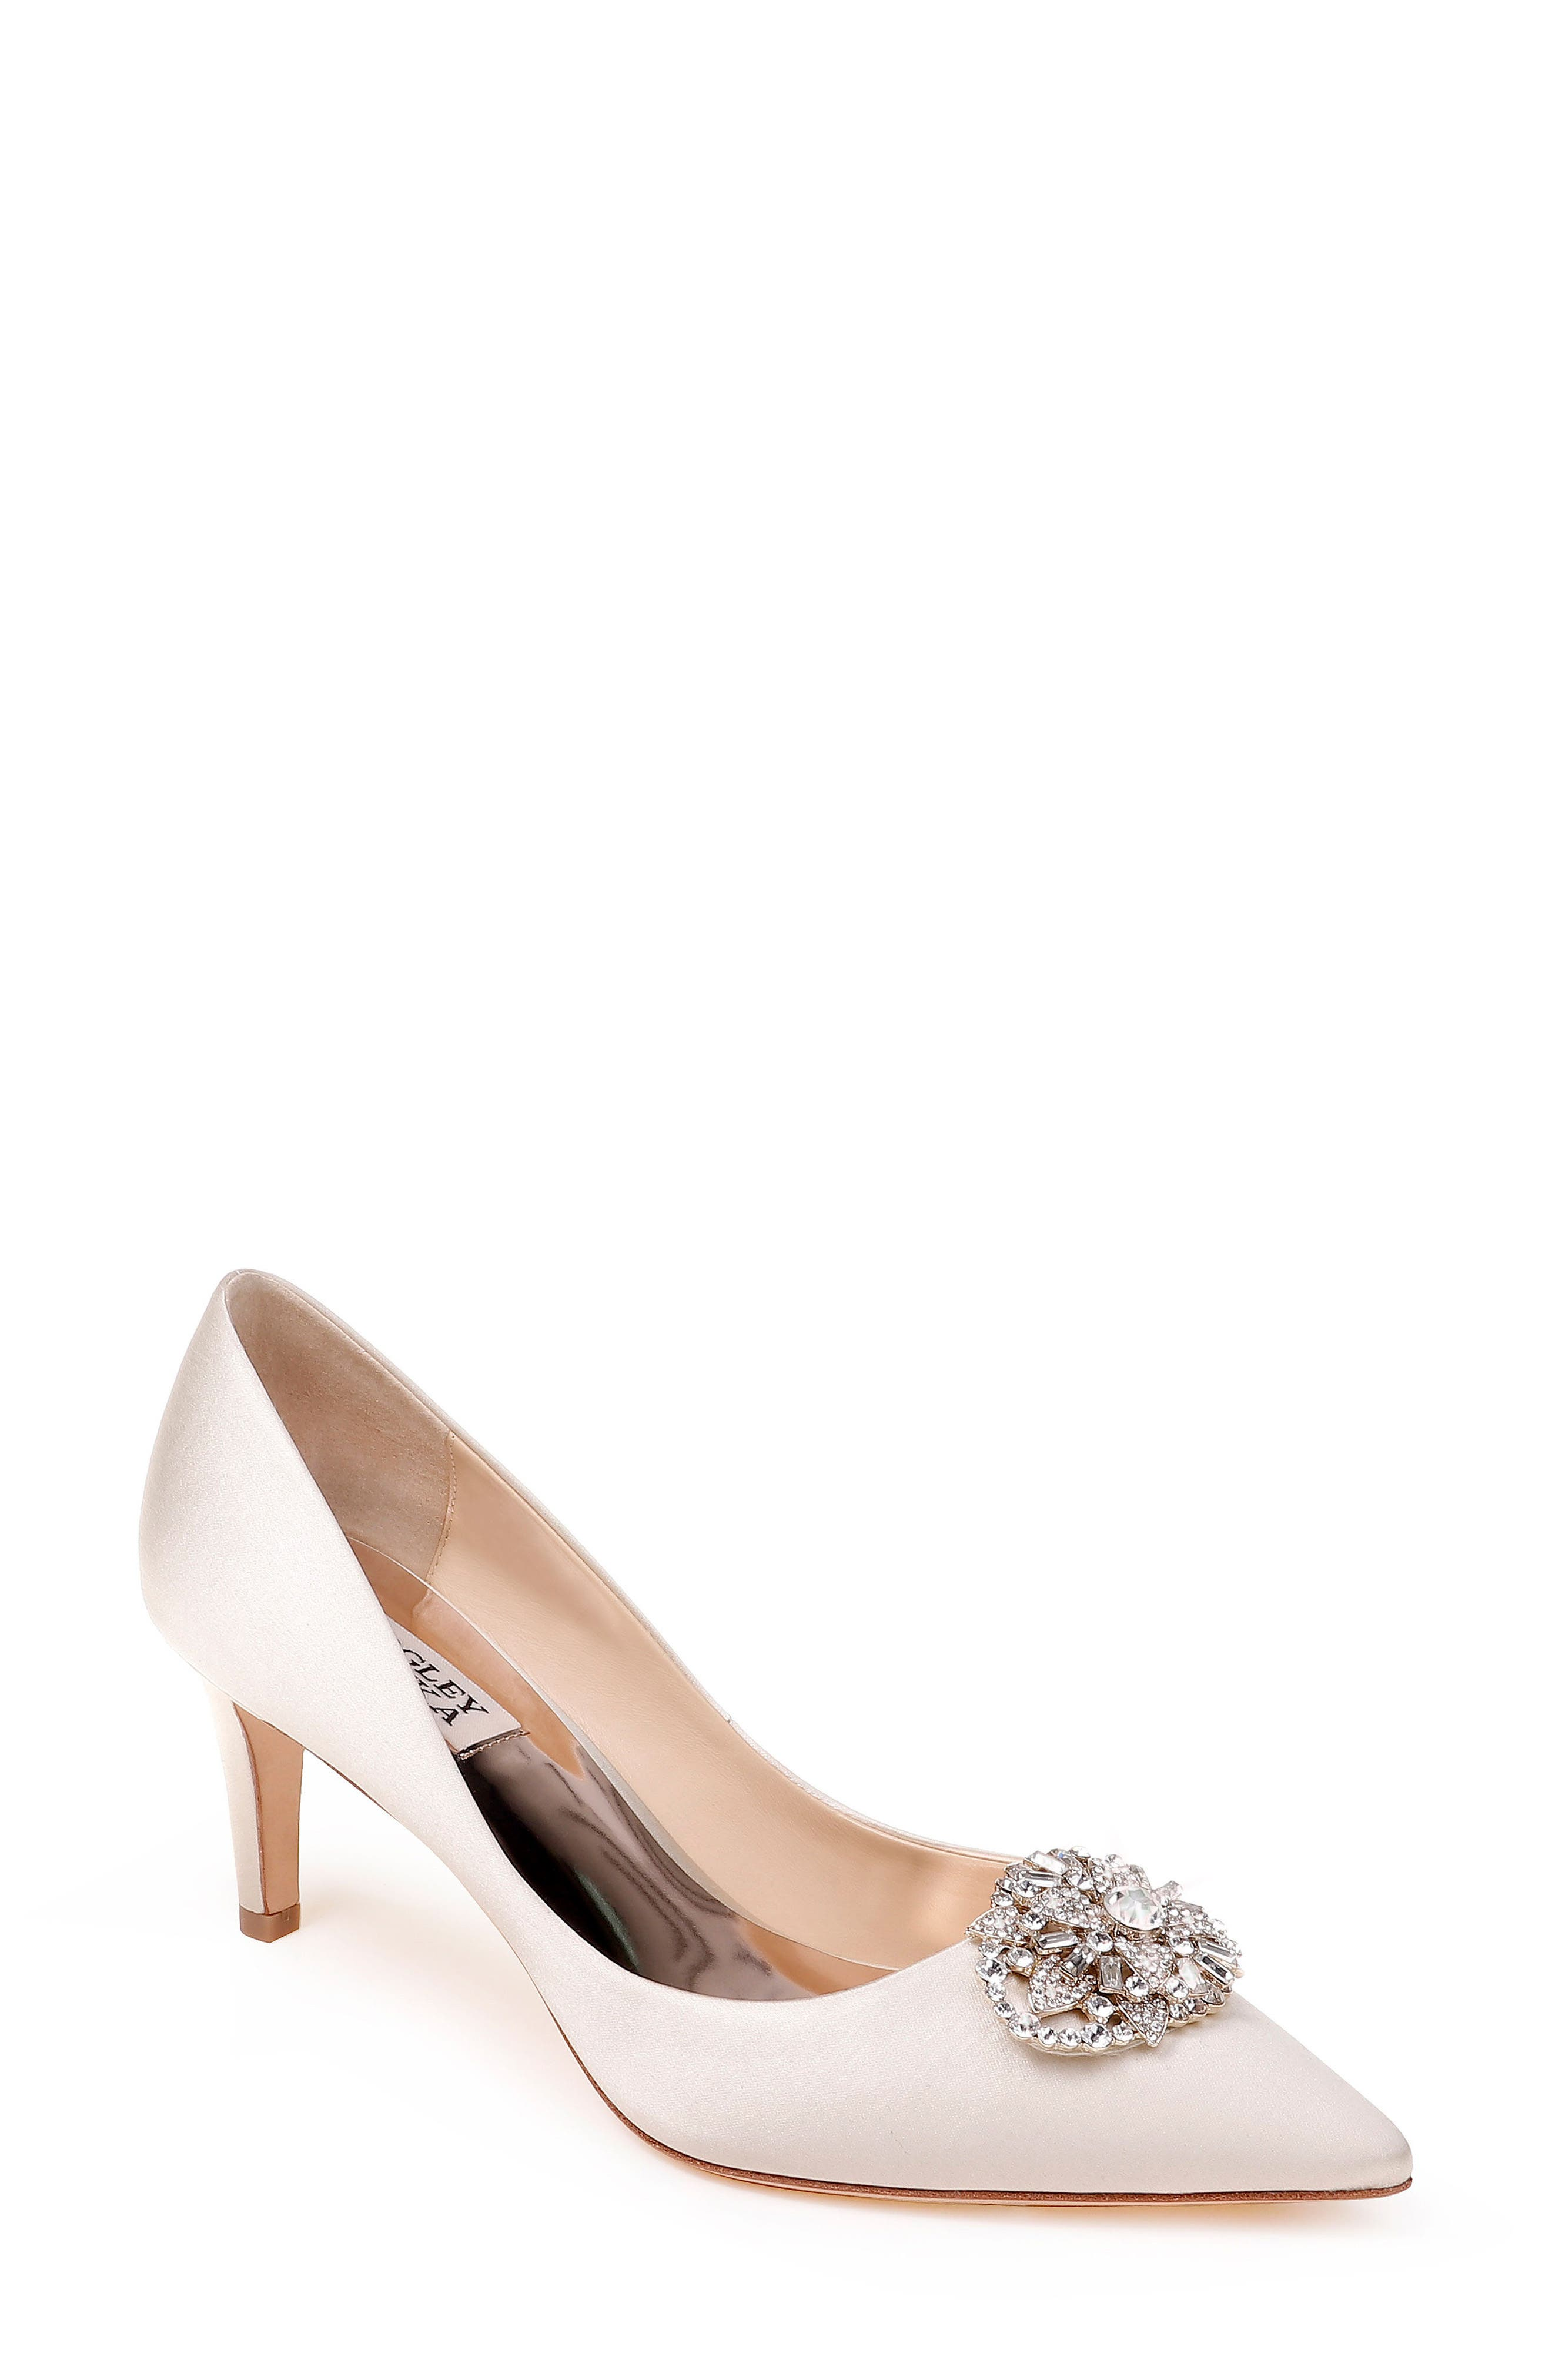 Sunshine Embellished Pump,                             Main thumbnail 1, color,                             IVORY SATIN